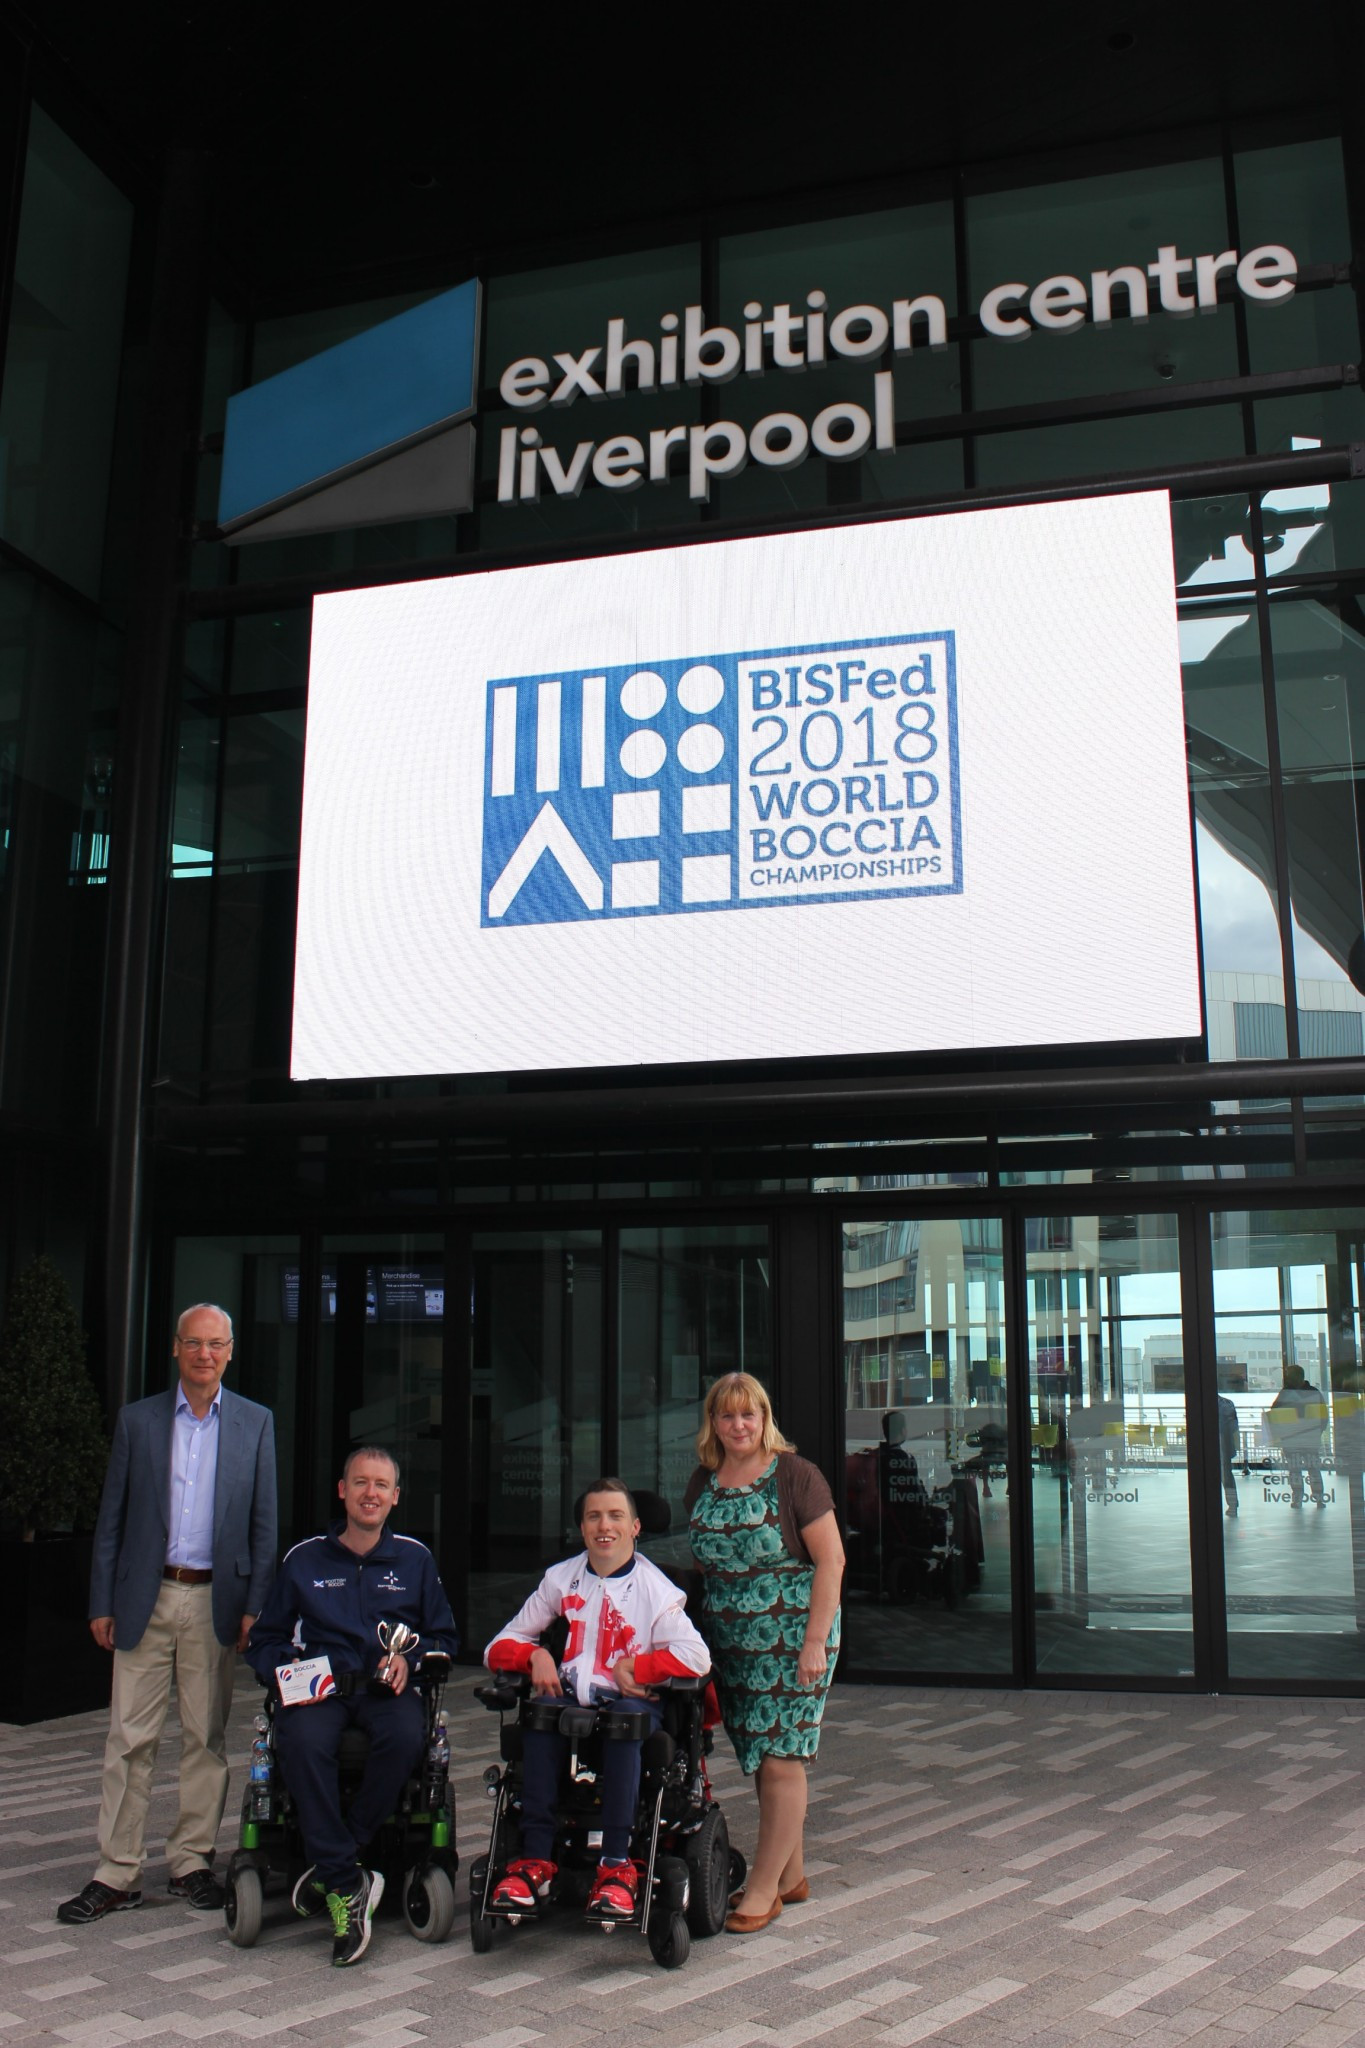 Left to right: John Dowson, Stephen McGuire, David Smith and Wendy Simon at the logo launch in Liverpool ©BISFed